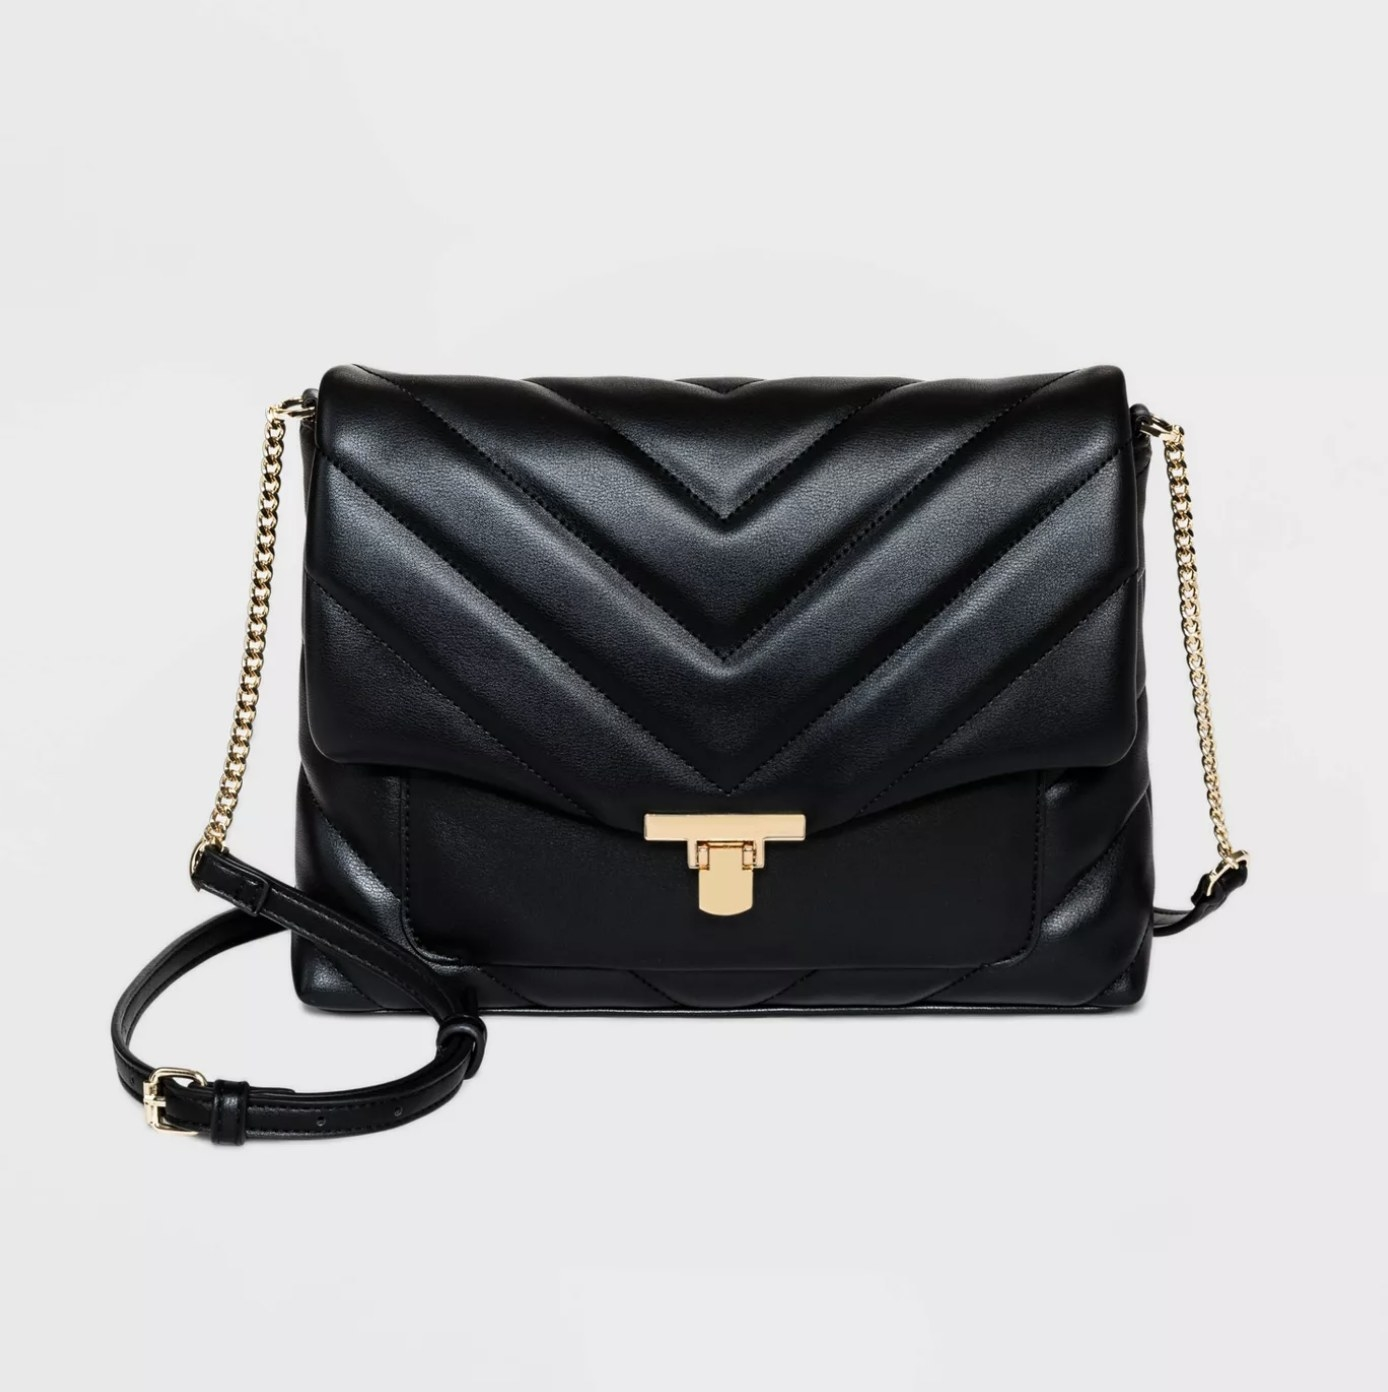 The black faux leather crossbody bag